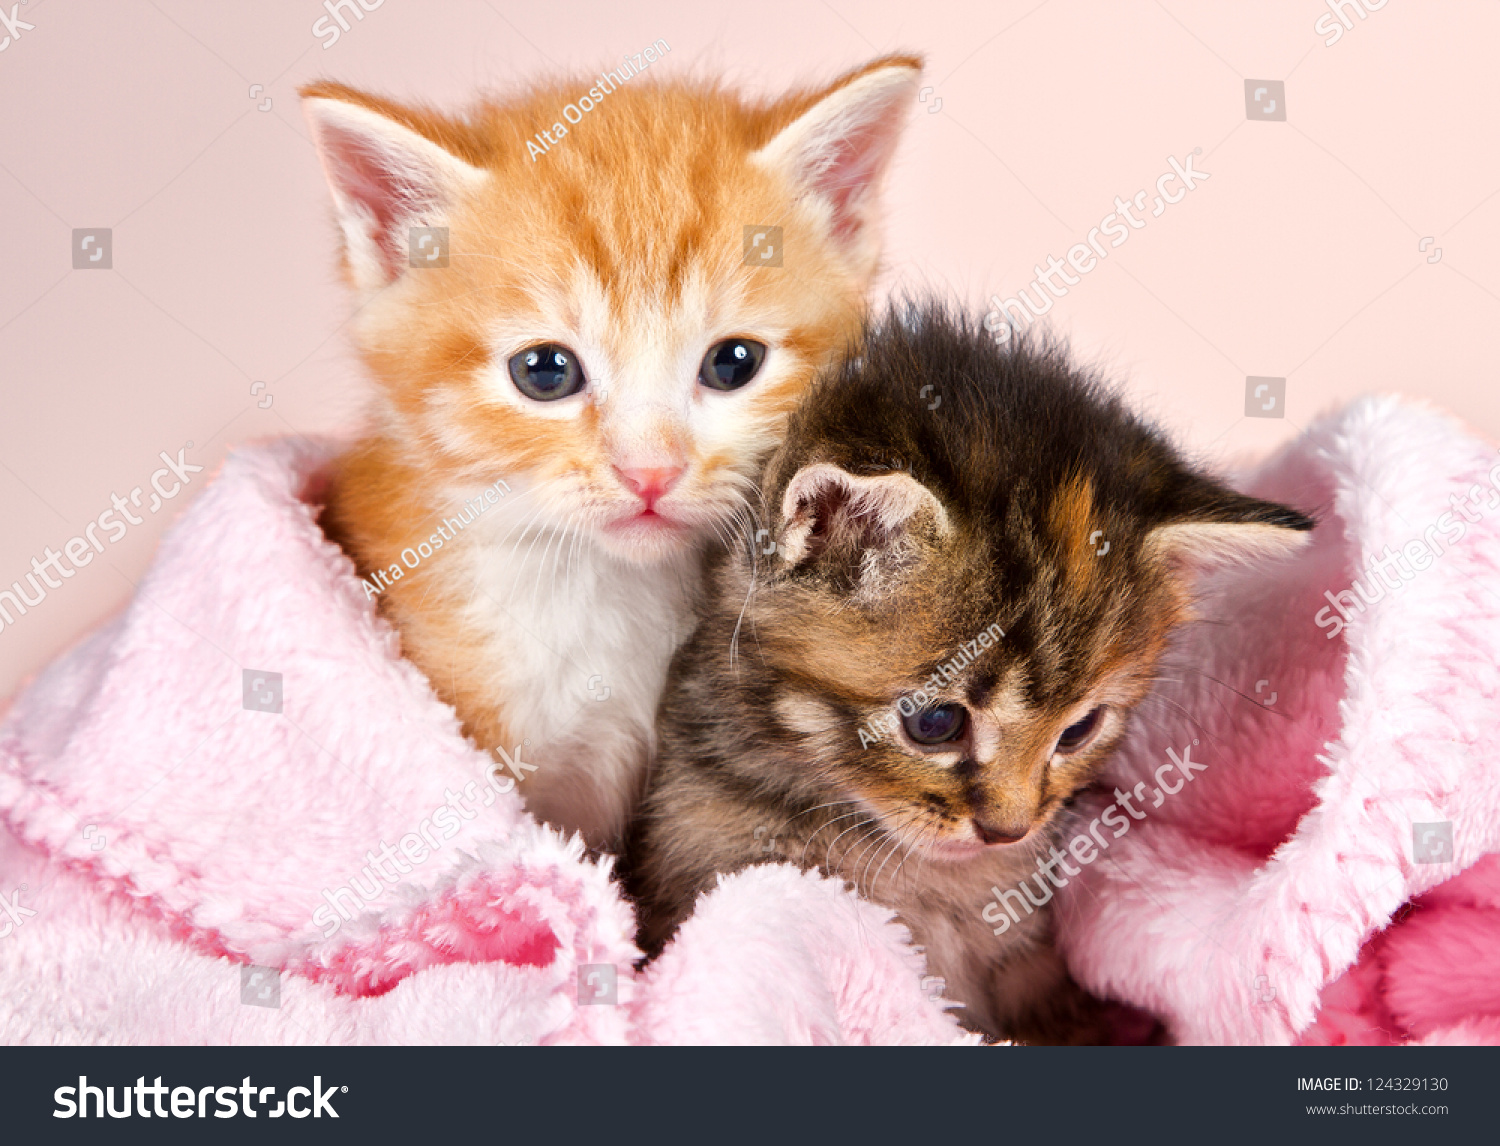 baby kittens wrapped in a pink blanket with a pink